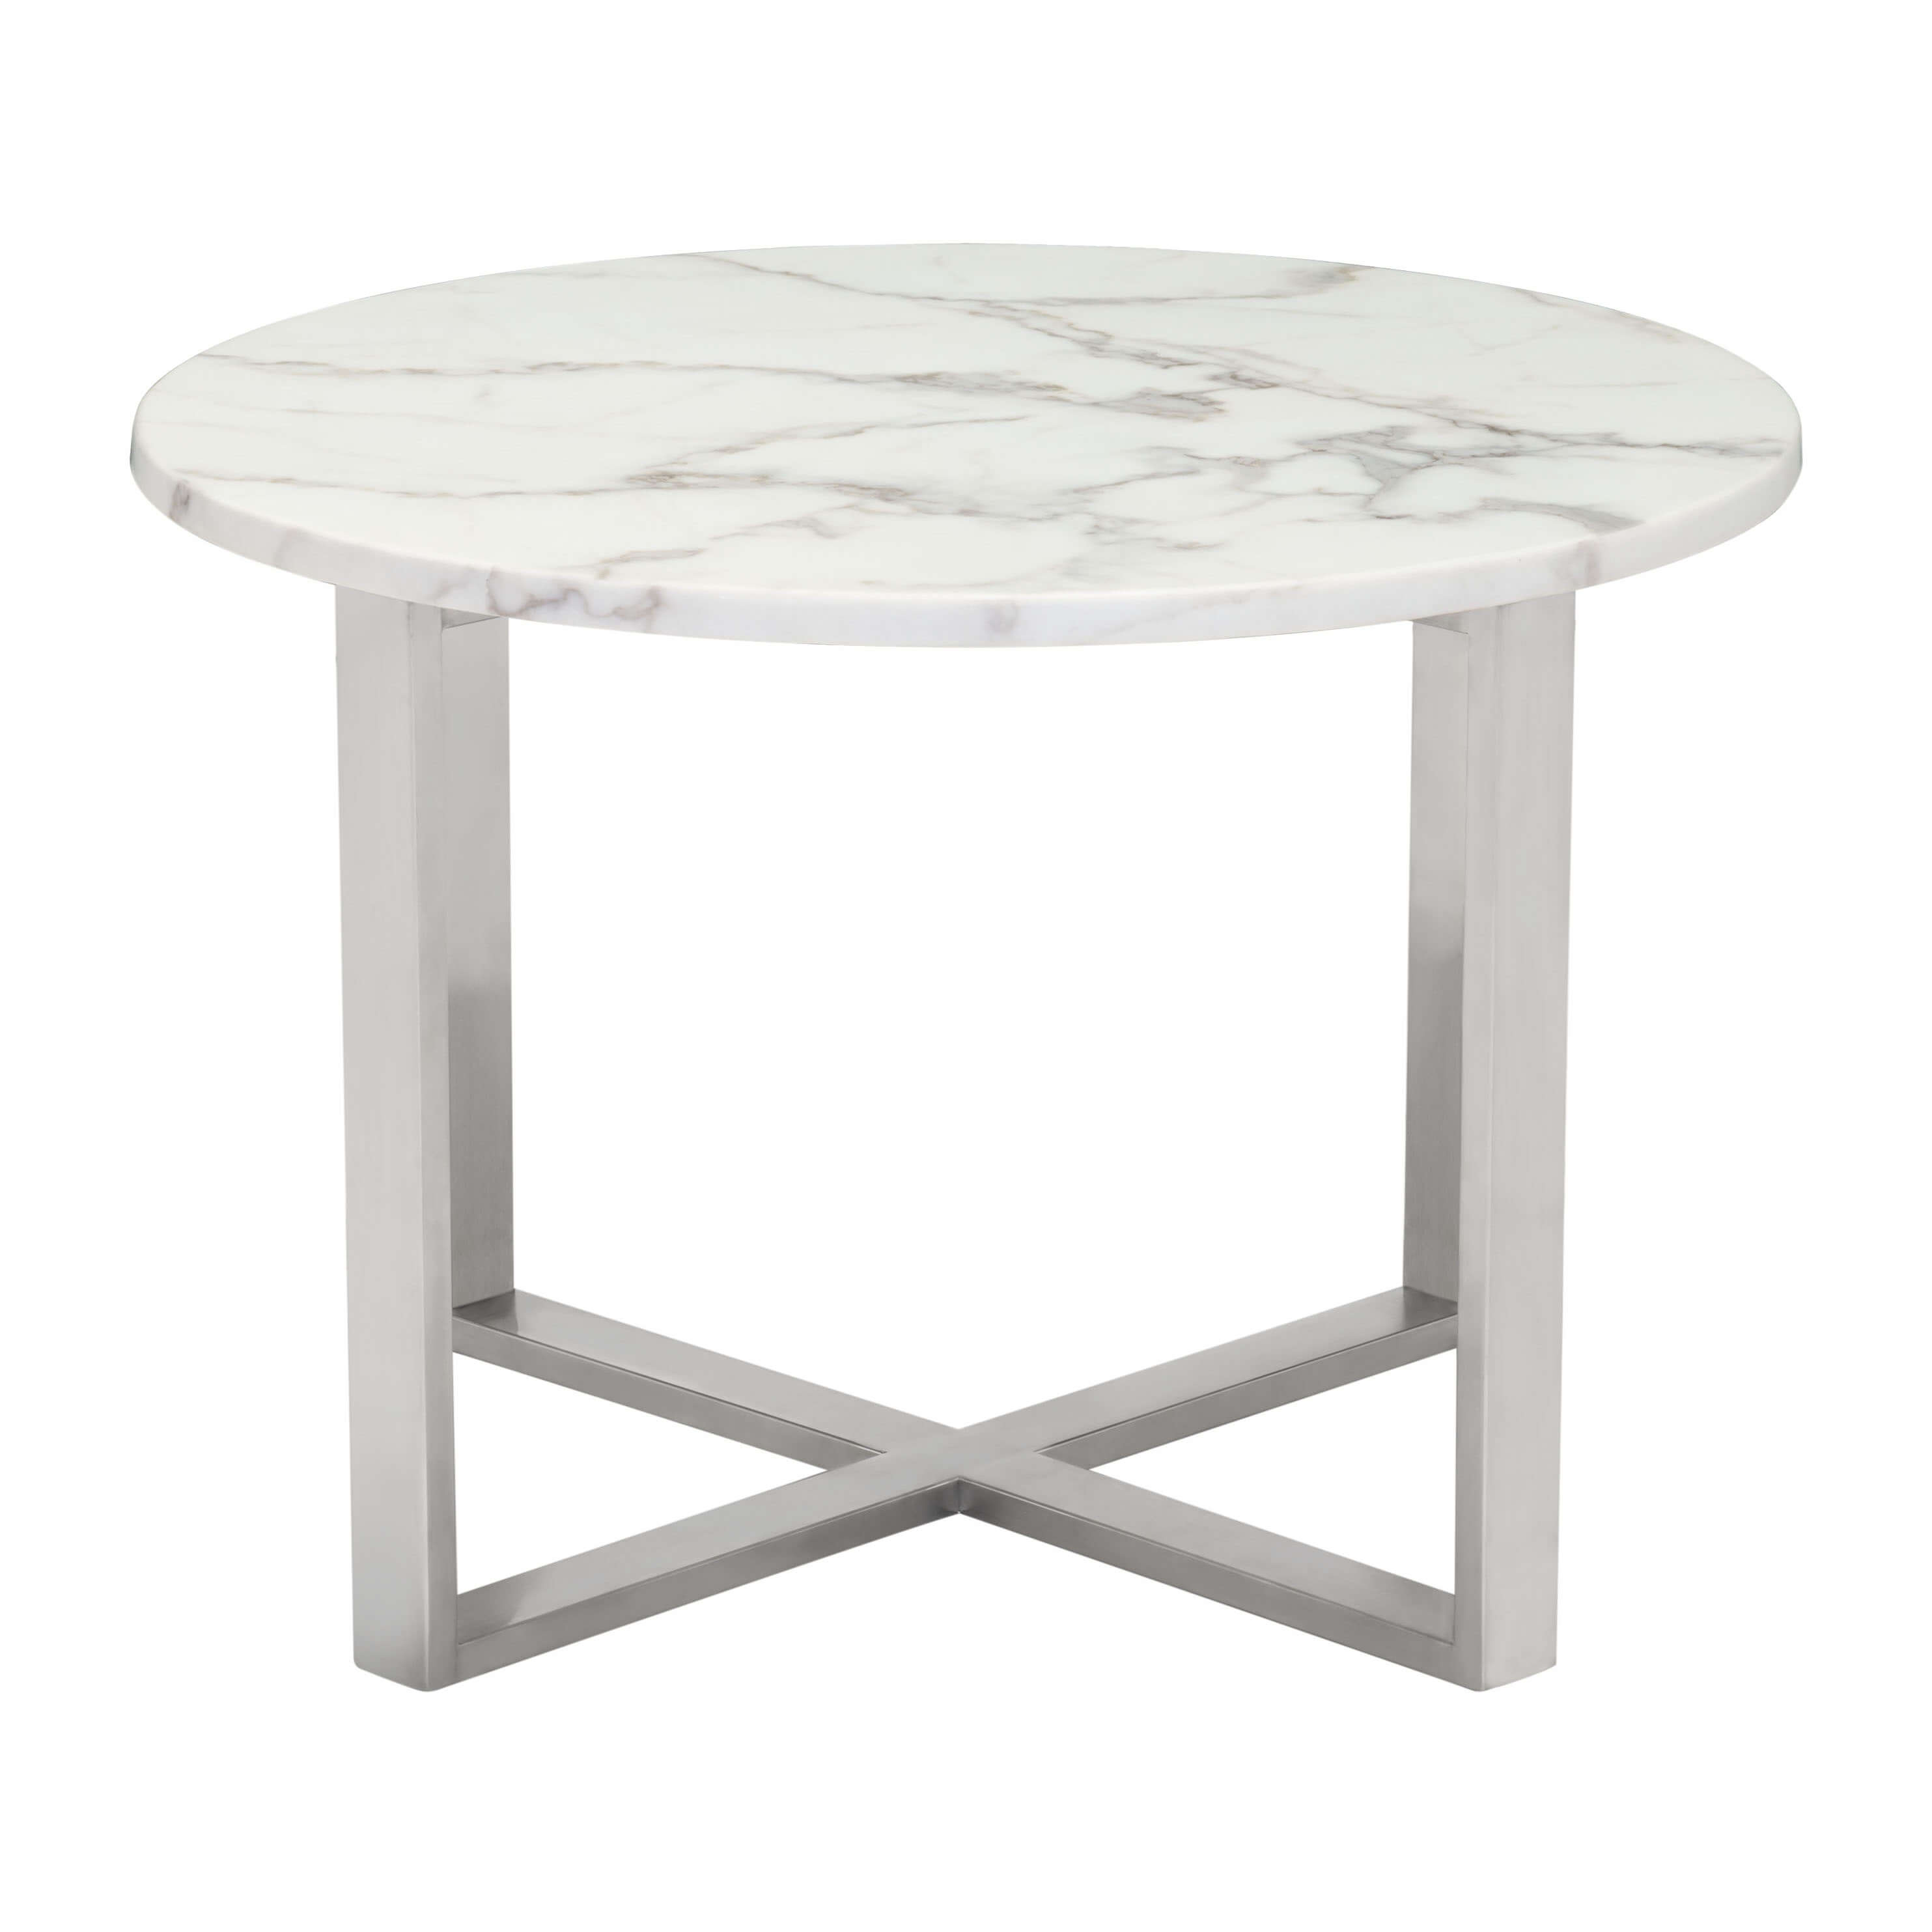 Occasional tables round front view 1 2